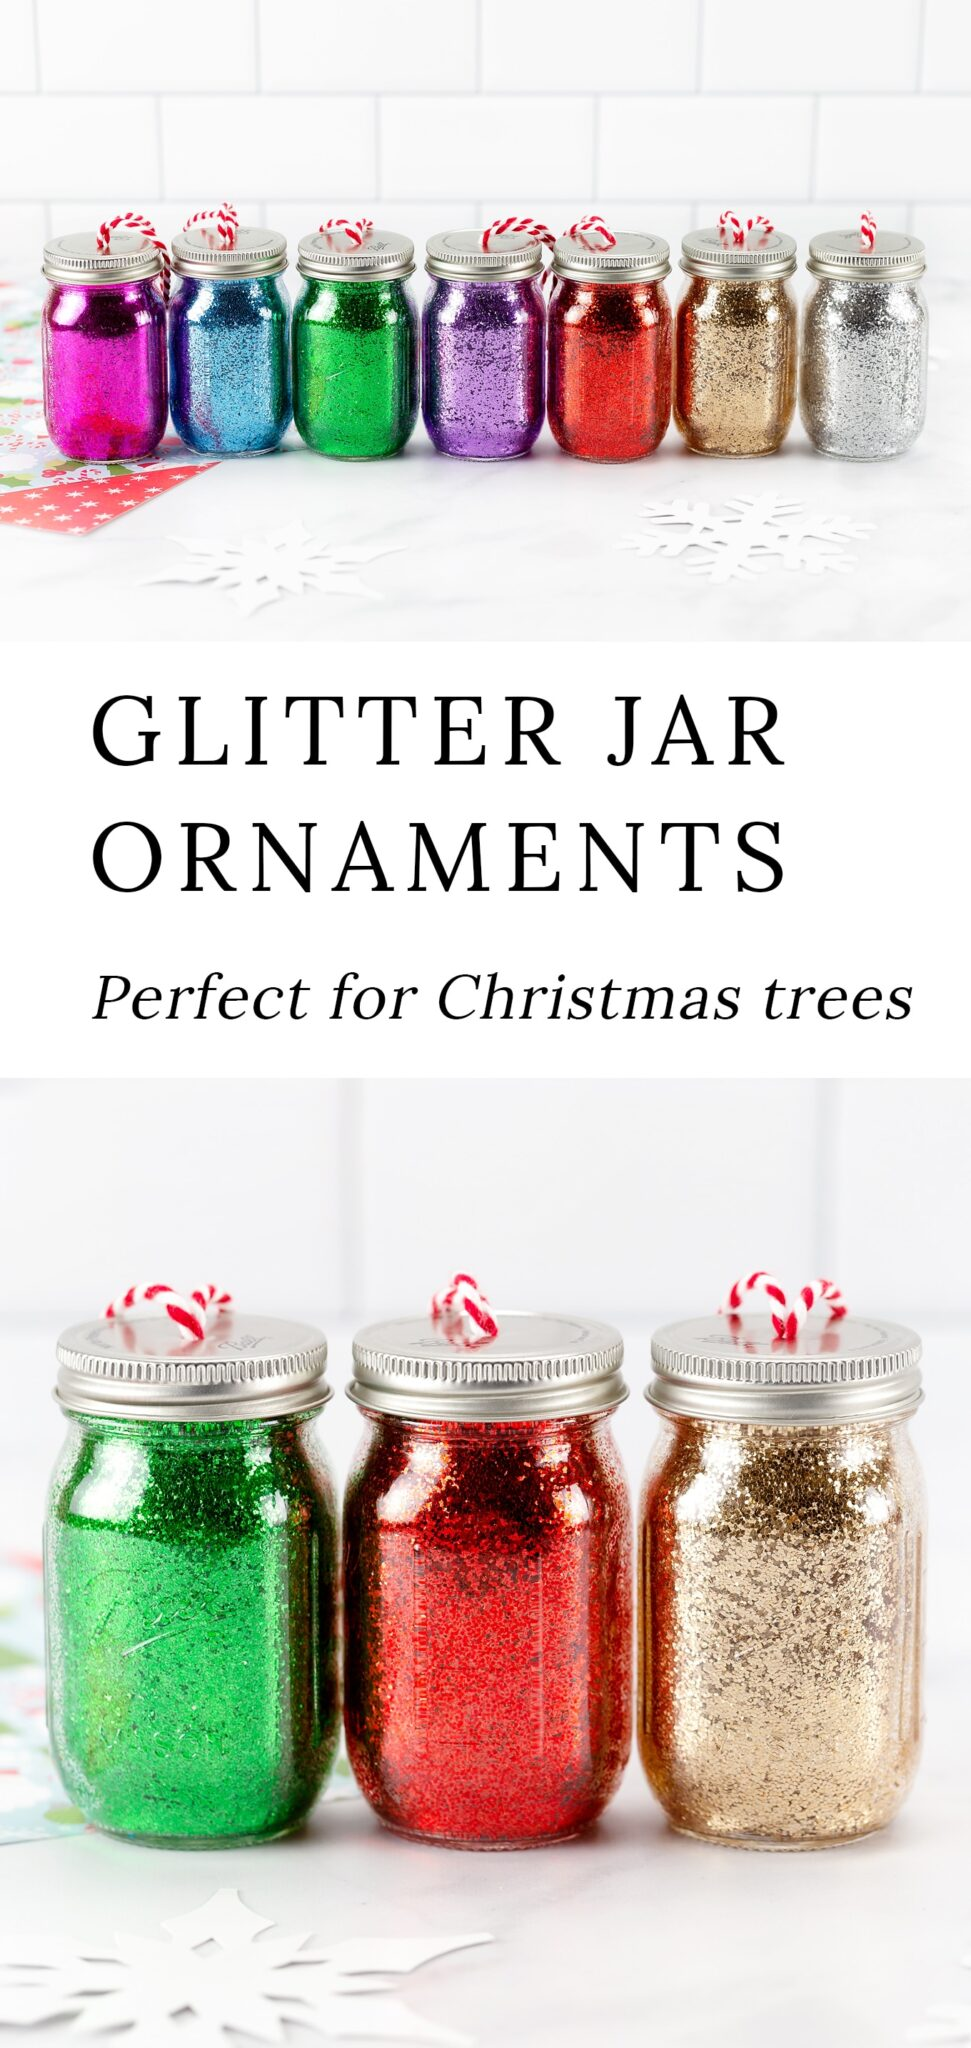 Perfect for calming stress during the busy holiday season, handmade Glitter Jar Ornaments are an easy and fun holiday craft for kids of all ages! They sparkle beautifully on the Christmas tree and make a thoughtful gift for friends and family who love glitter jars. #glitterjars #ornaments #kidscrafts via @firefliesandmudpies